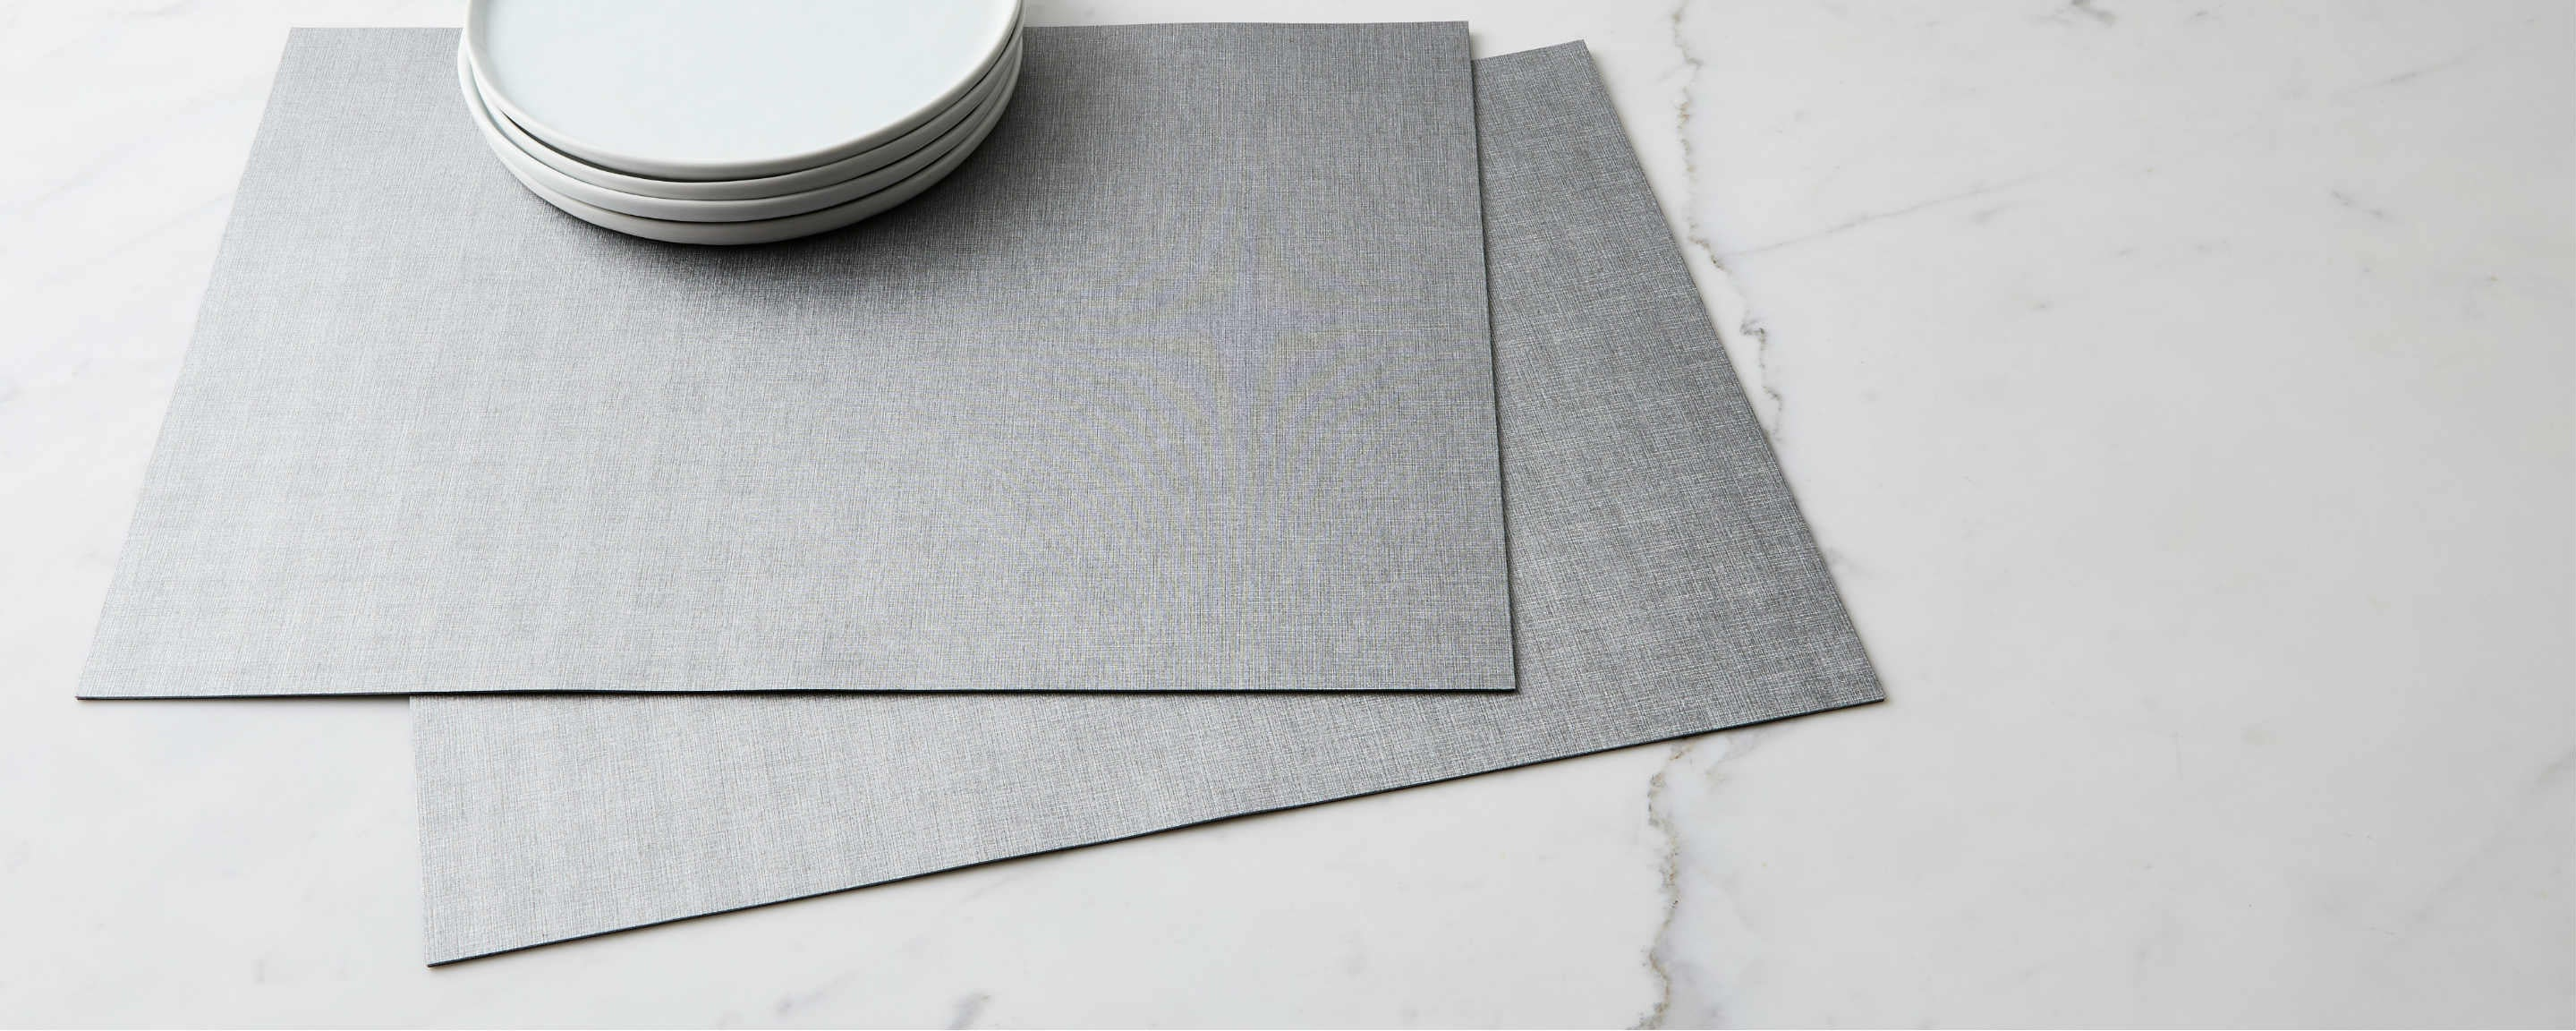 textured silver placemat